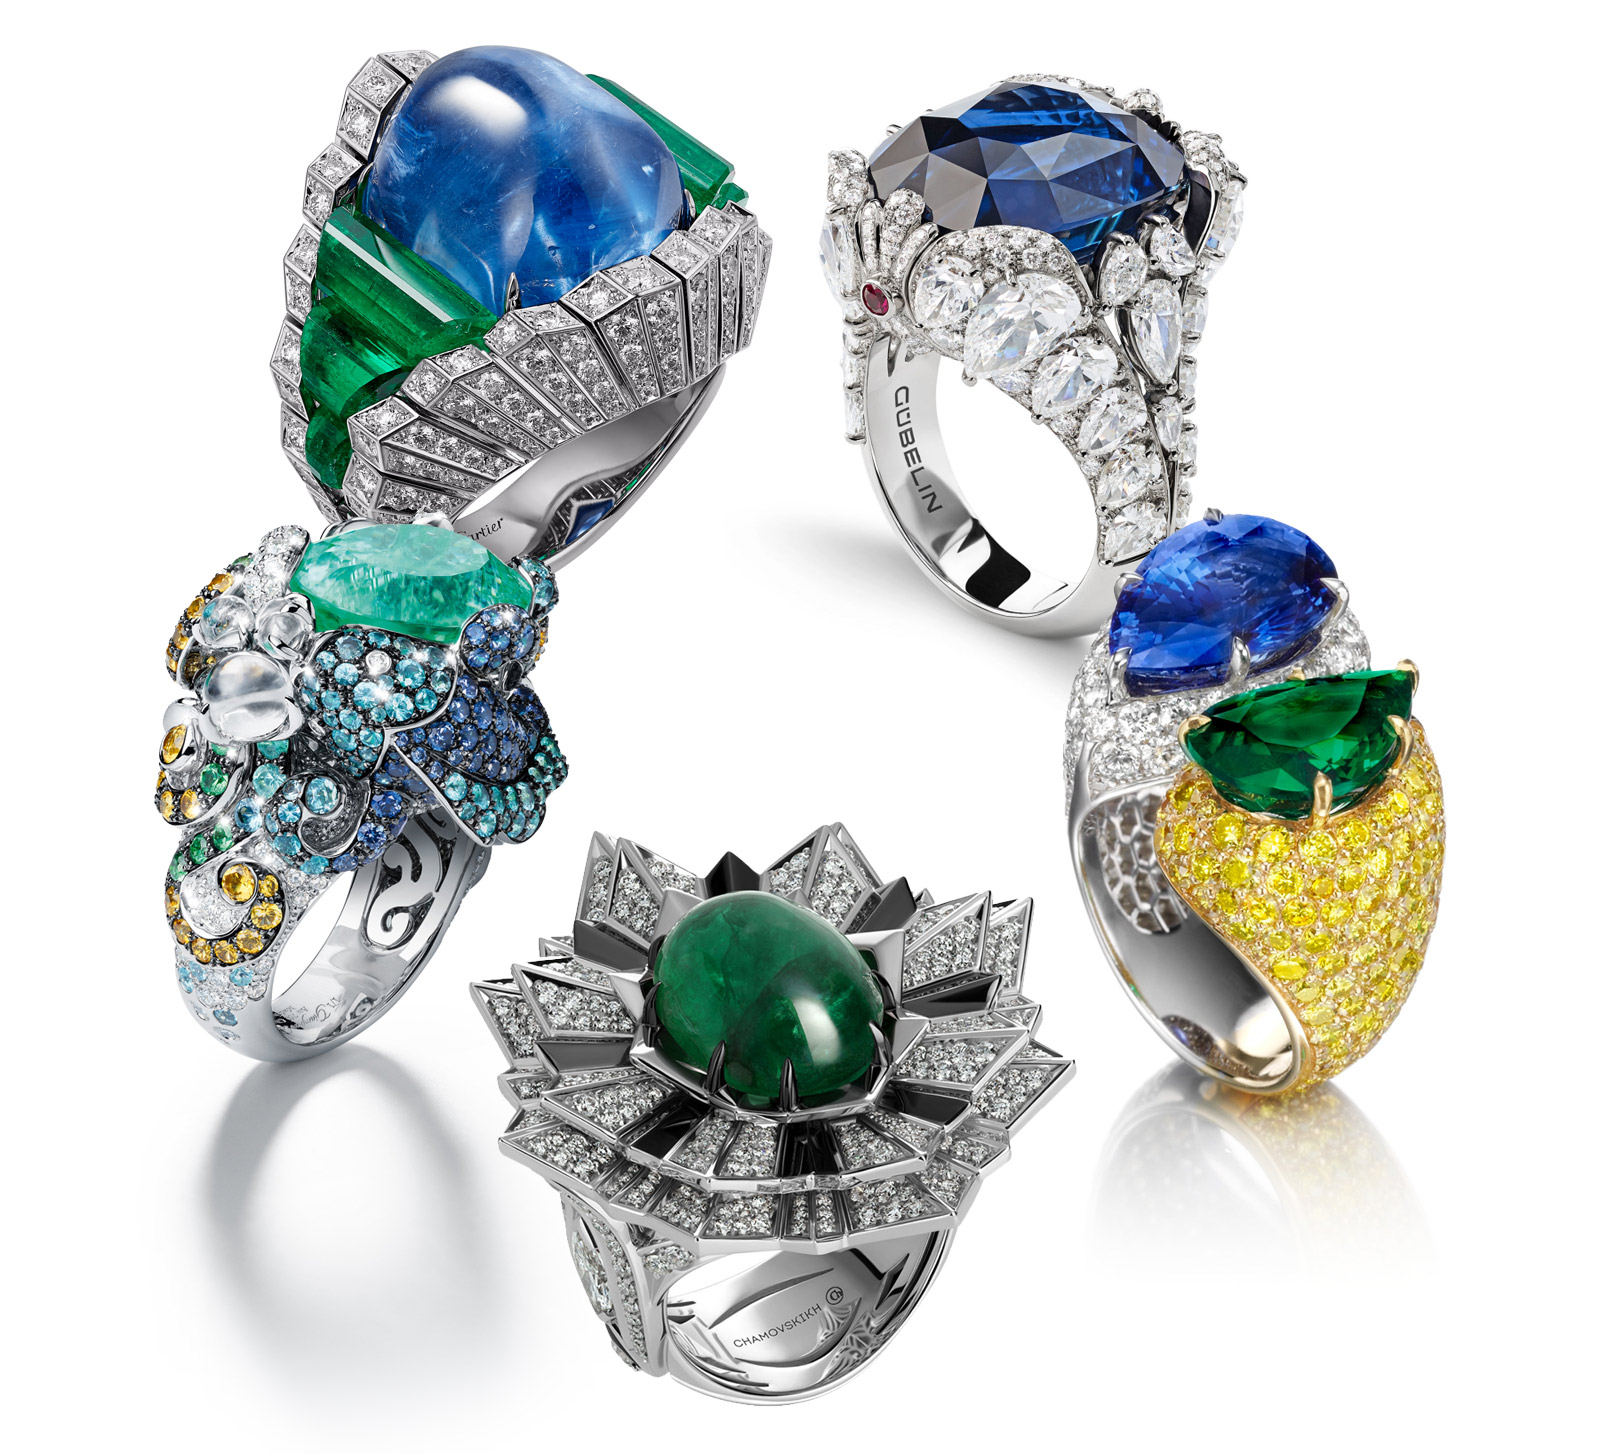 From top to bottom: Cartier 'Resonances de Cartier' ring with sapphire, emeralds and diamonds; Gubelin Seahorse ring with sapphire and diamonds, House of Tabbah ring with sapphire, emerald, yellow and colourless diamonds, Chamovskikh ring with cabochon emerald and diamonds, Giampiero Bodino ring with Paraiba tourmaline, sapphires and diamonds.